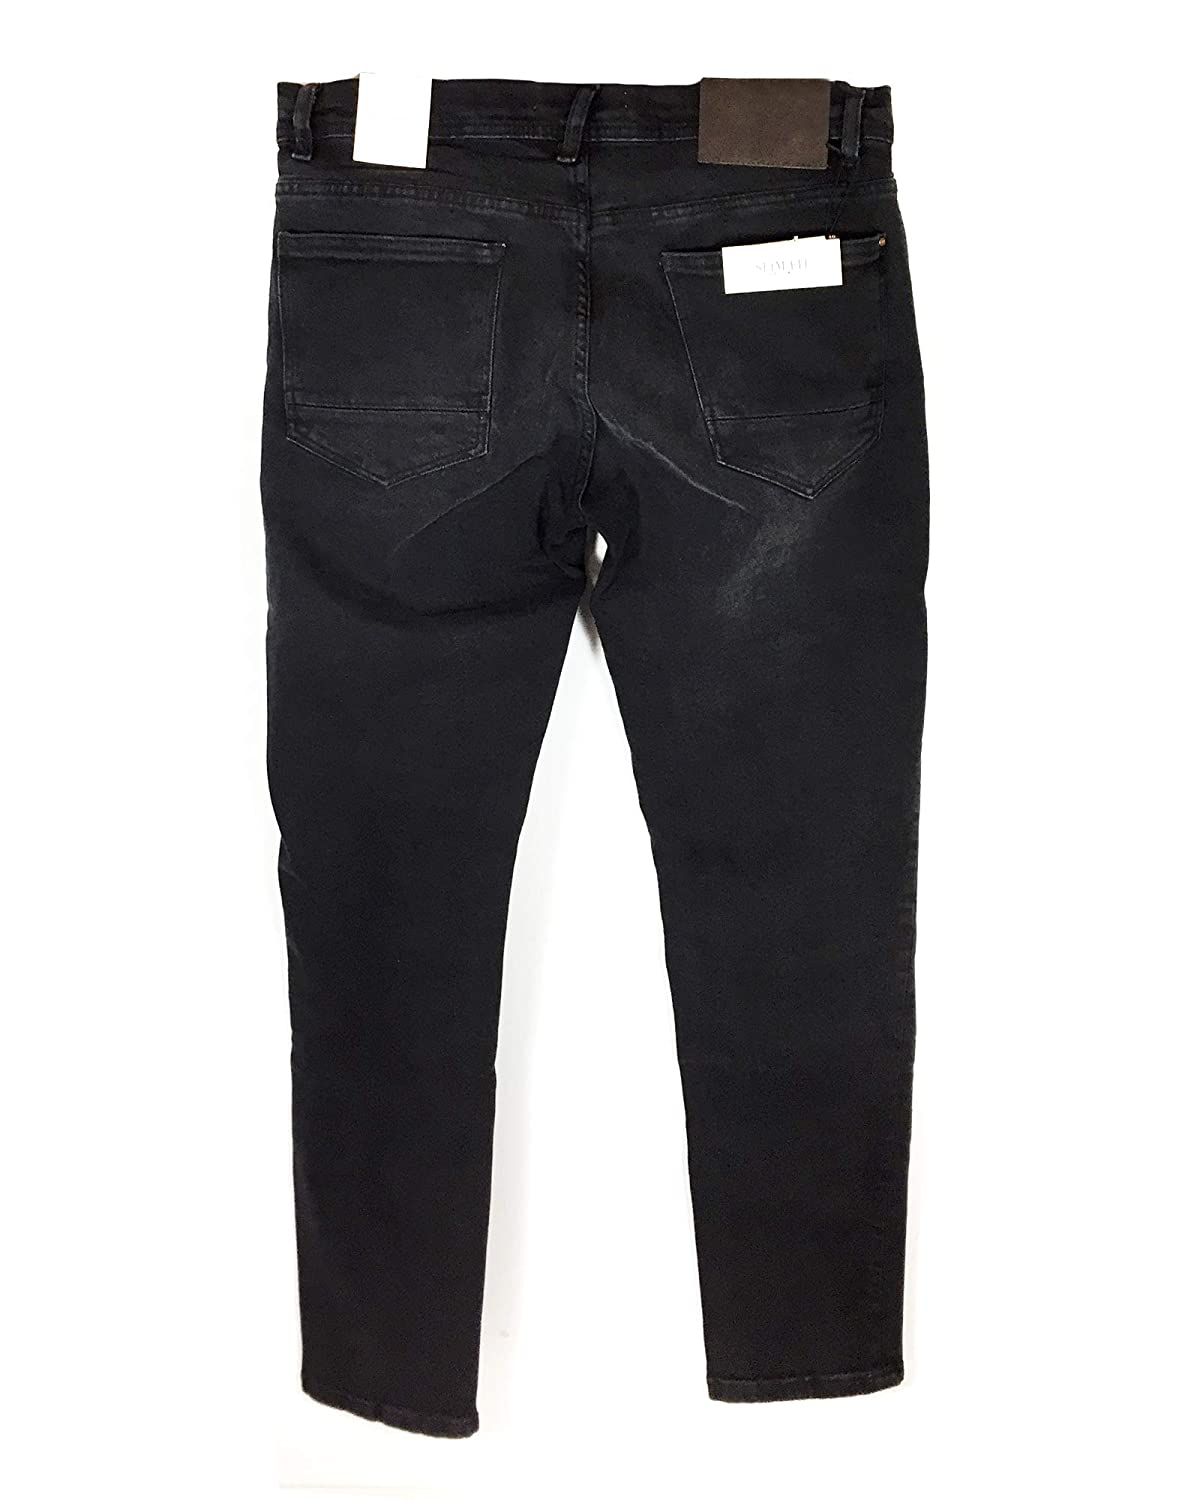 df126c7405 Zara Men's Basic Slim Jeans 5575/380 Black: Amazon.co.uk: Clothing